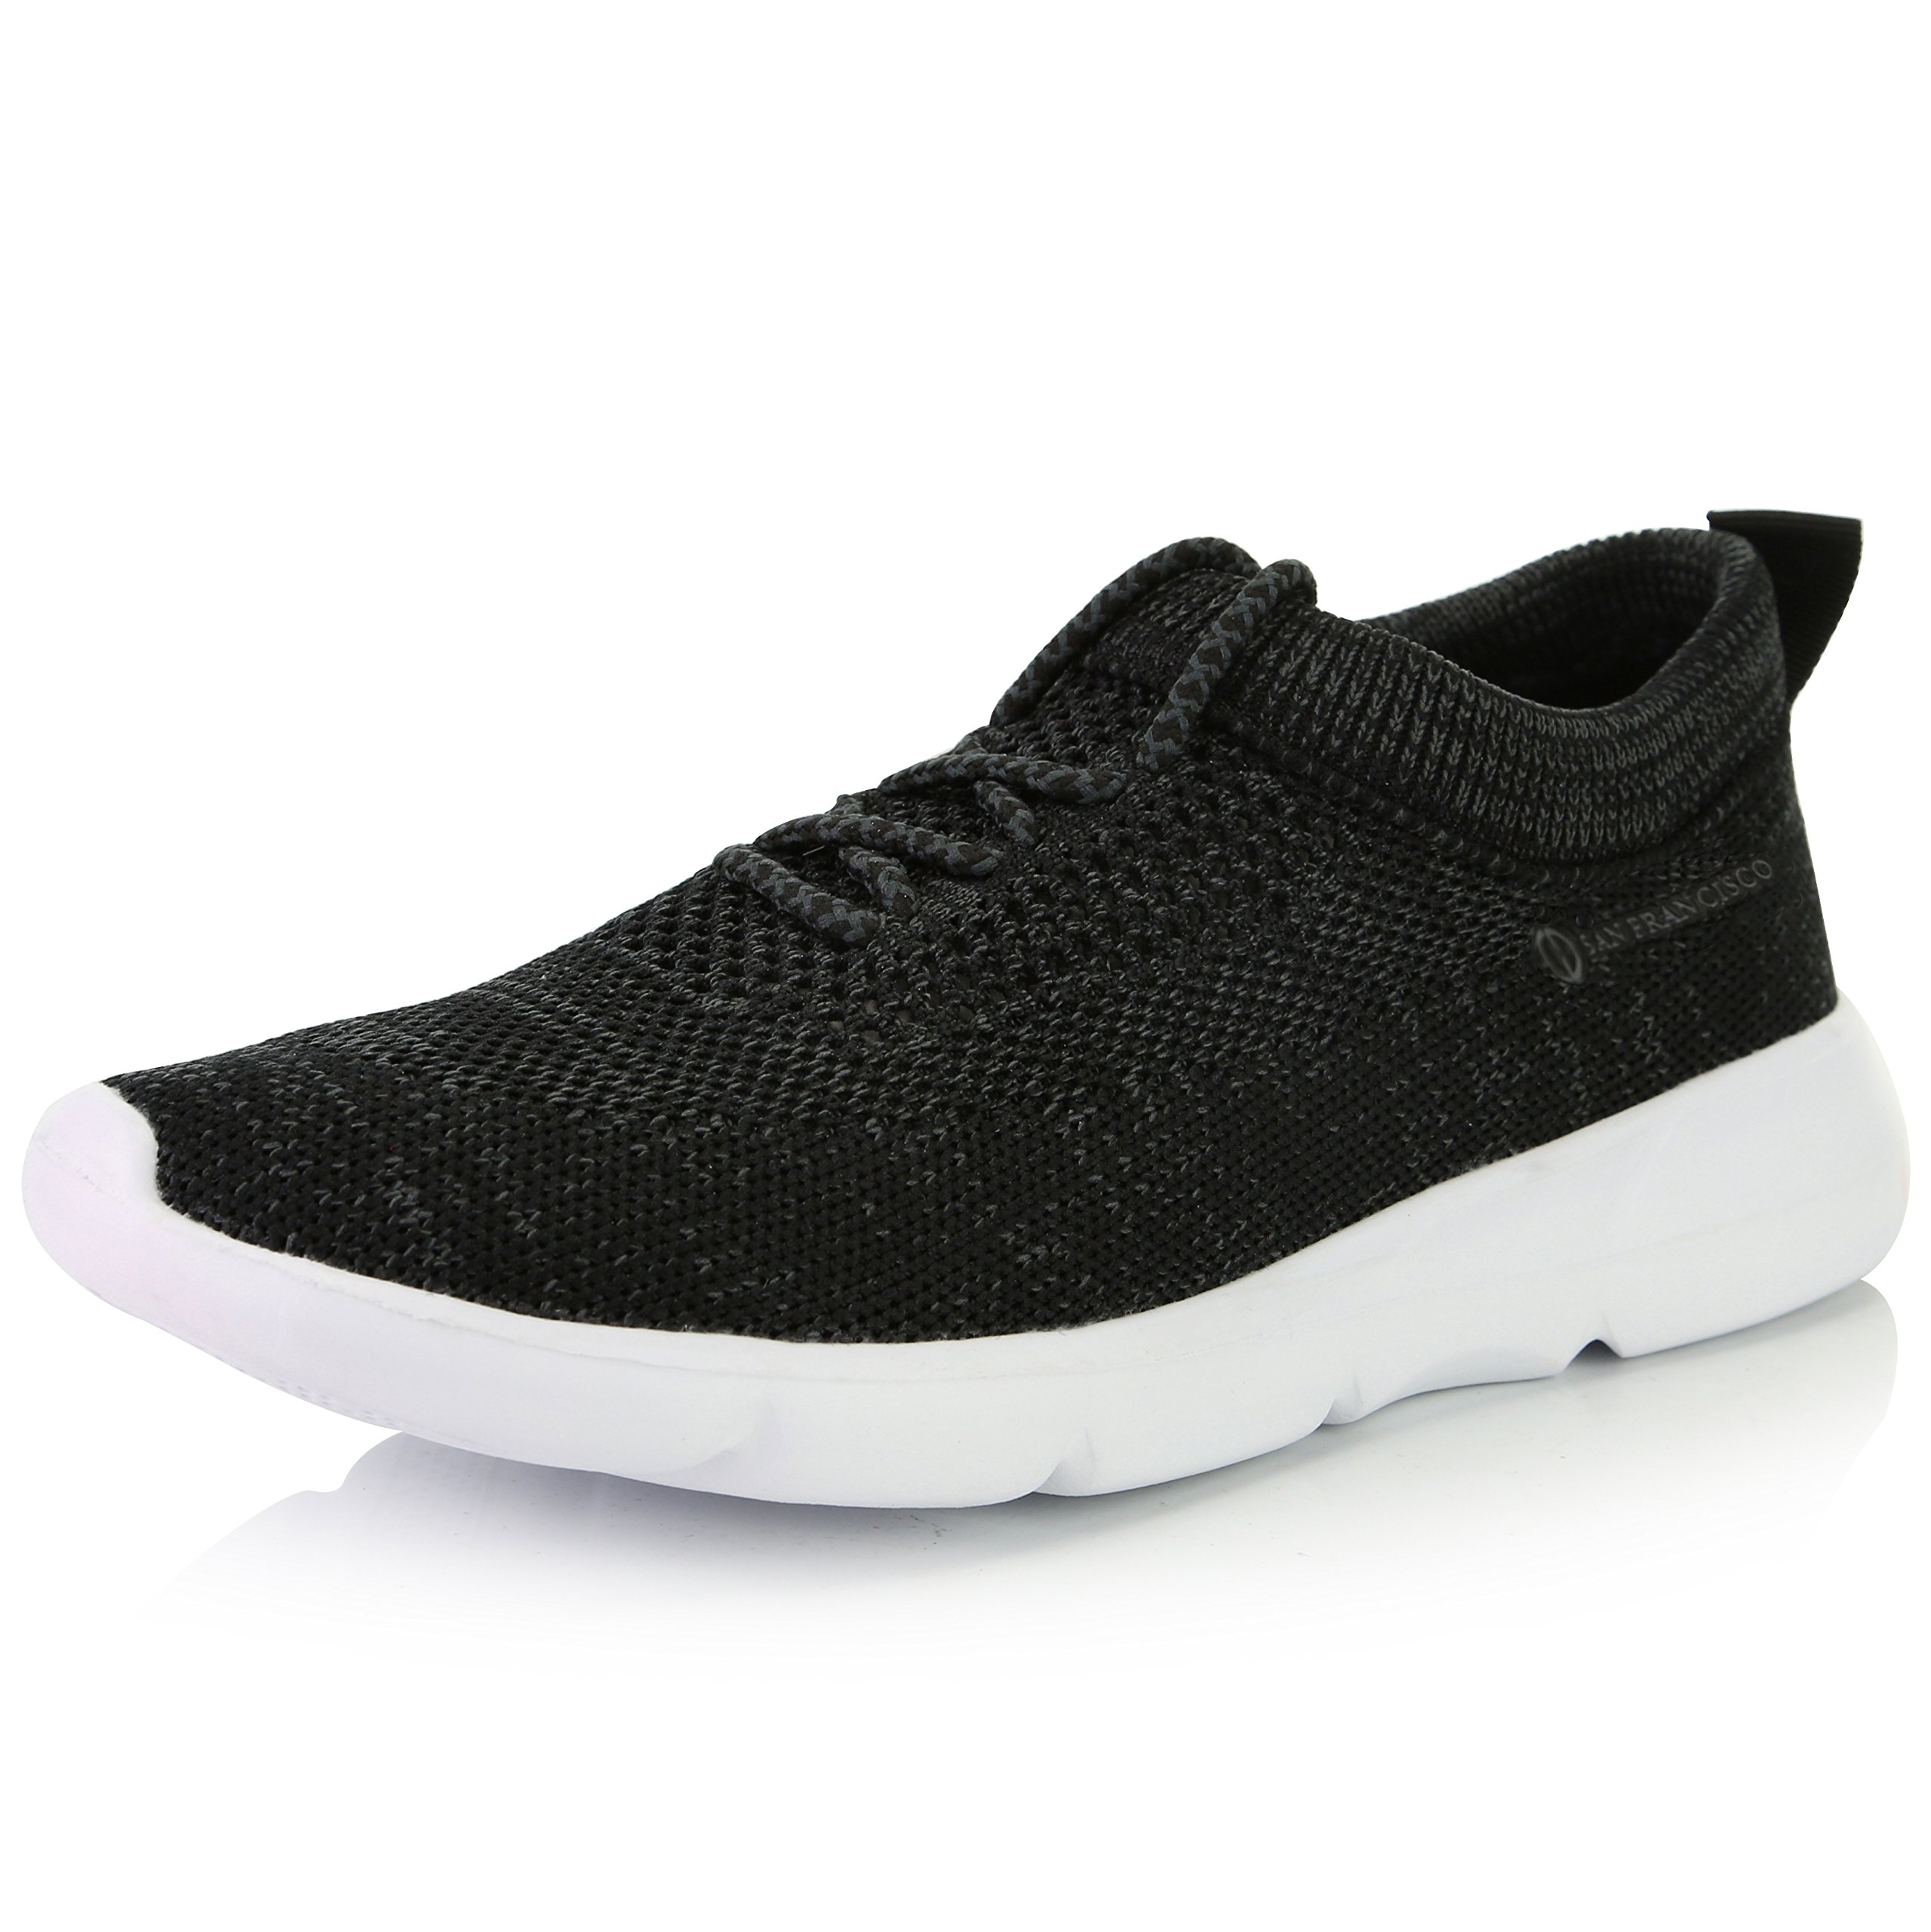 DailyShoes Women's Mesh Slip-on Athletic Shoes with Fit-6207L Memory Foam Insoles Comfortable Casual Sneakers, Black Mesh, 9 B(M) US